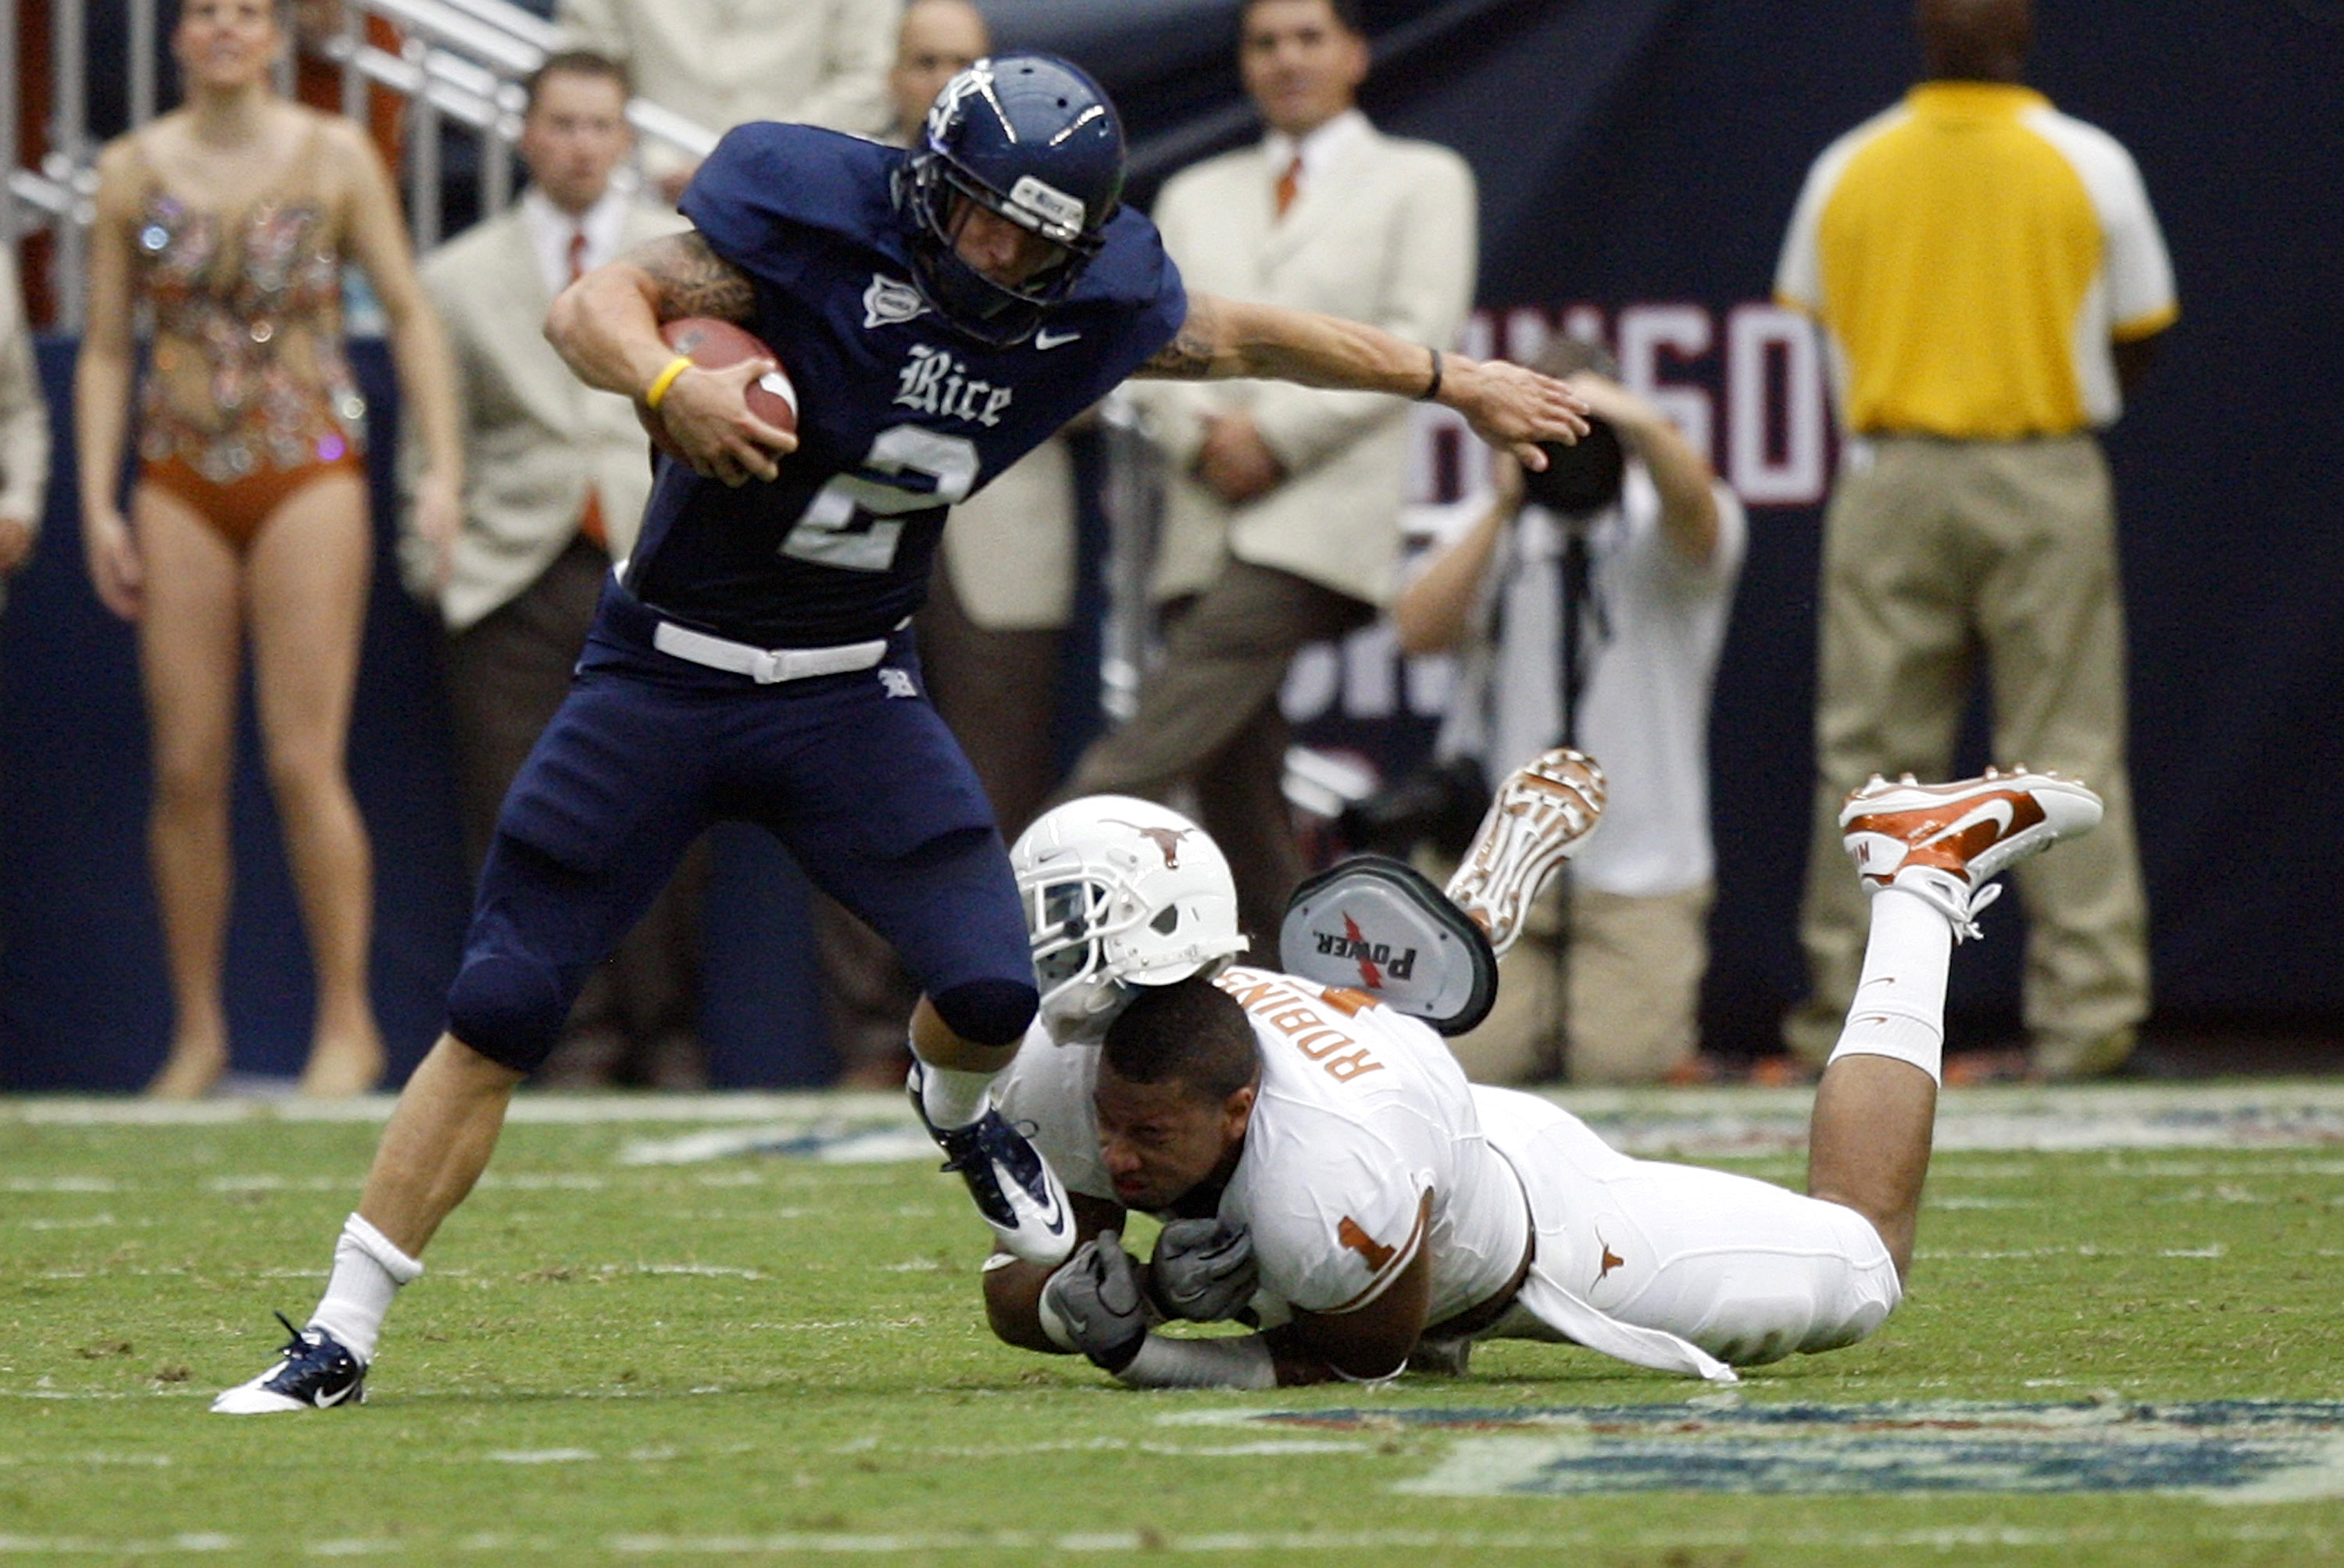 HOUSTON - SEPTEMBER 04:  Running back Sam McGuffie #2 of the Rice Owls is tackled by linebacker Keenan Robinson #1 of the Texas Longhorns at Reliant Stadium on September 4, 2010 in Houston, Texas.  (Photo by Bob Levey/Getty Images)